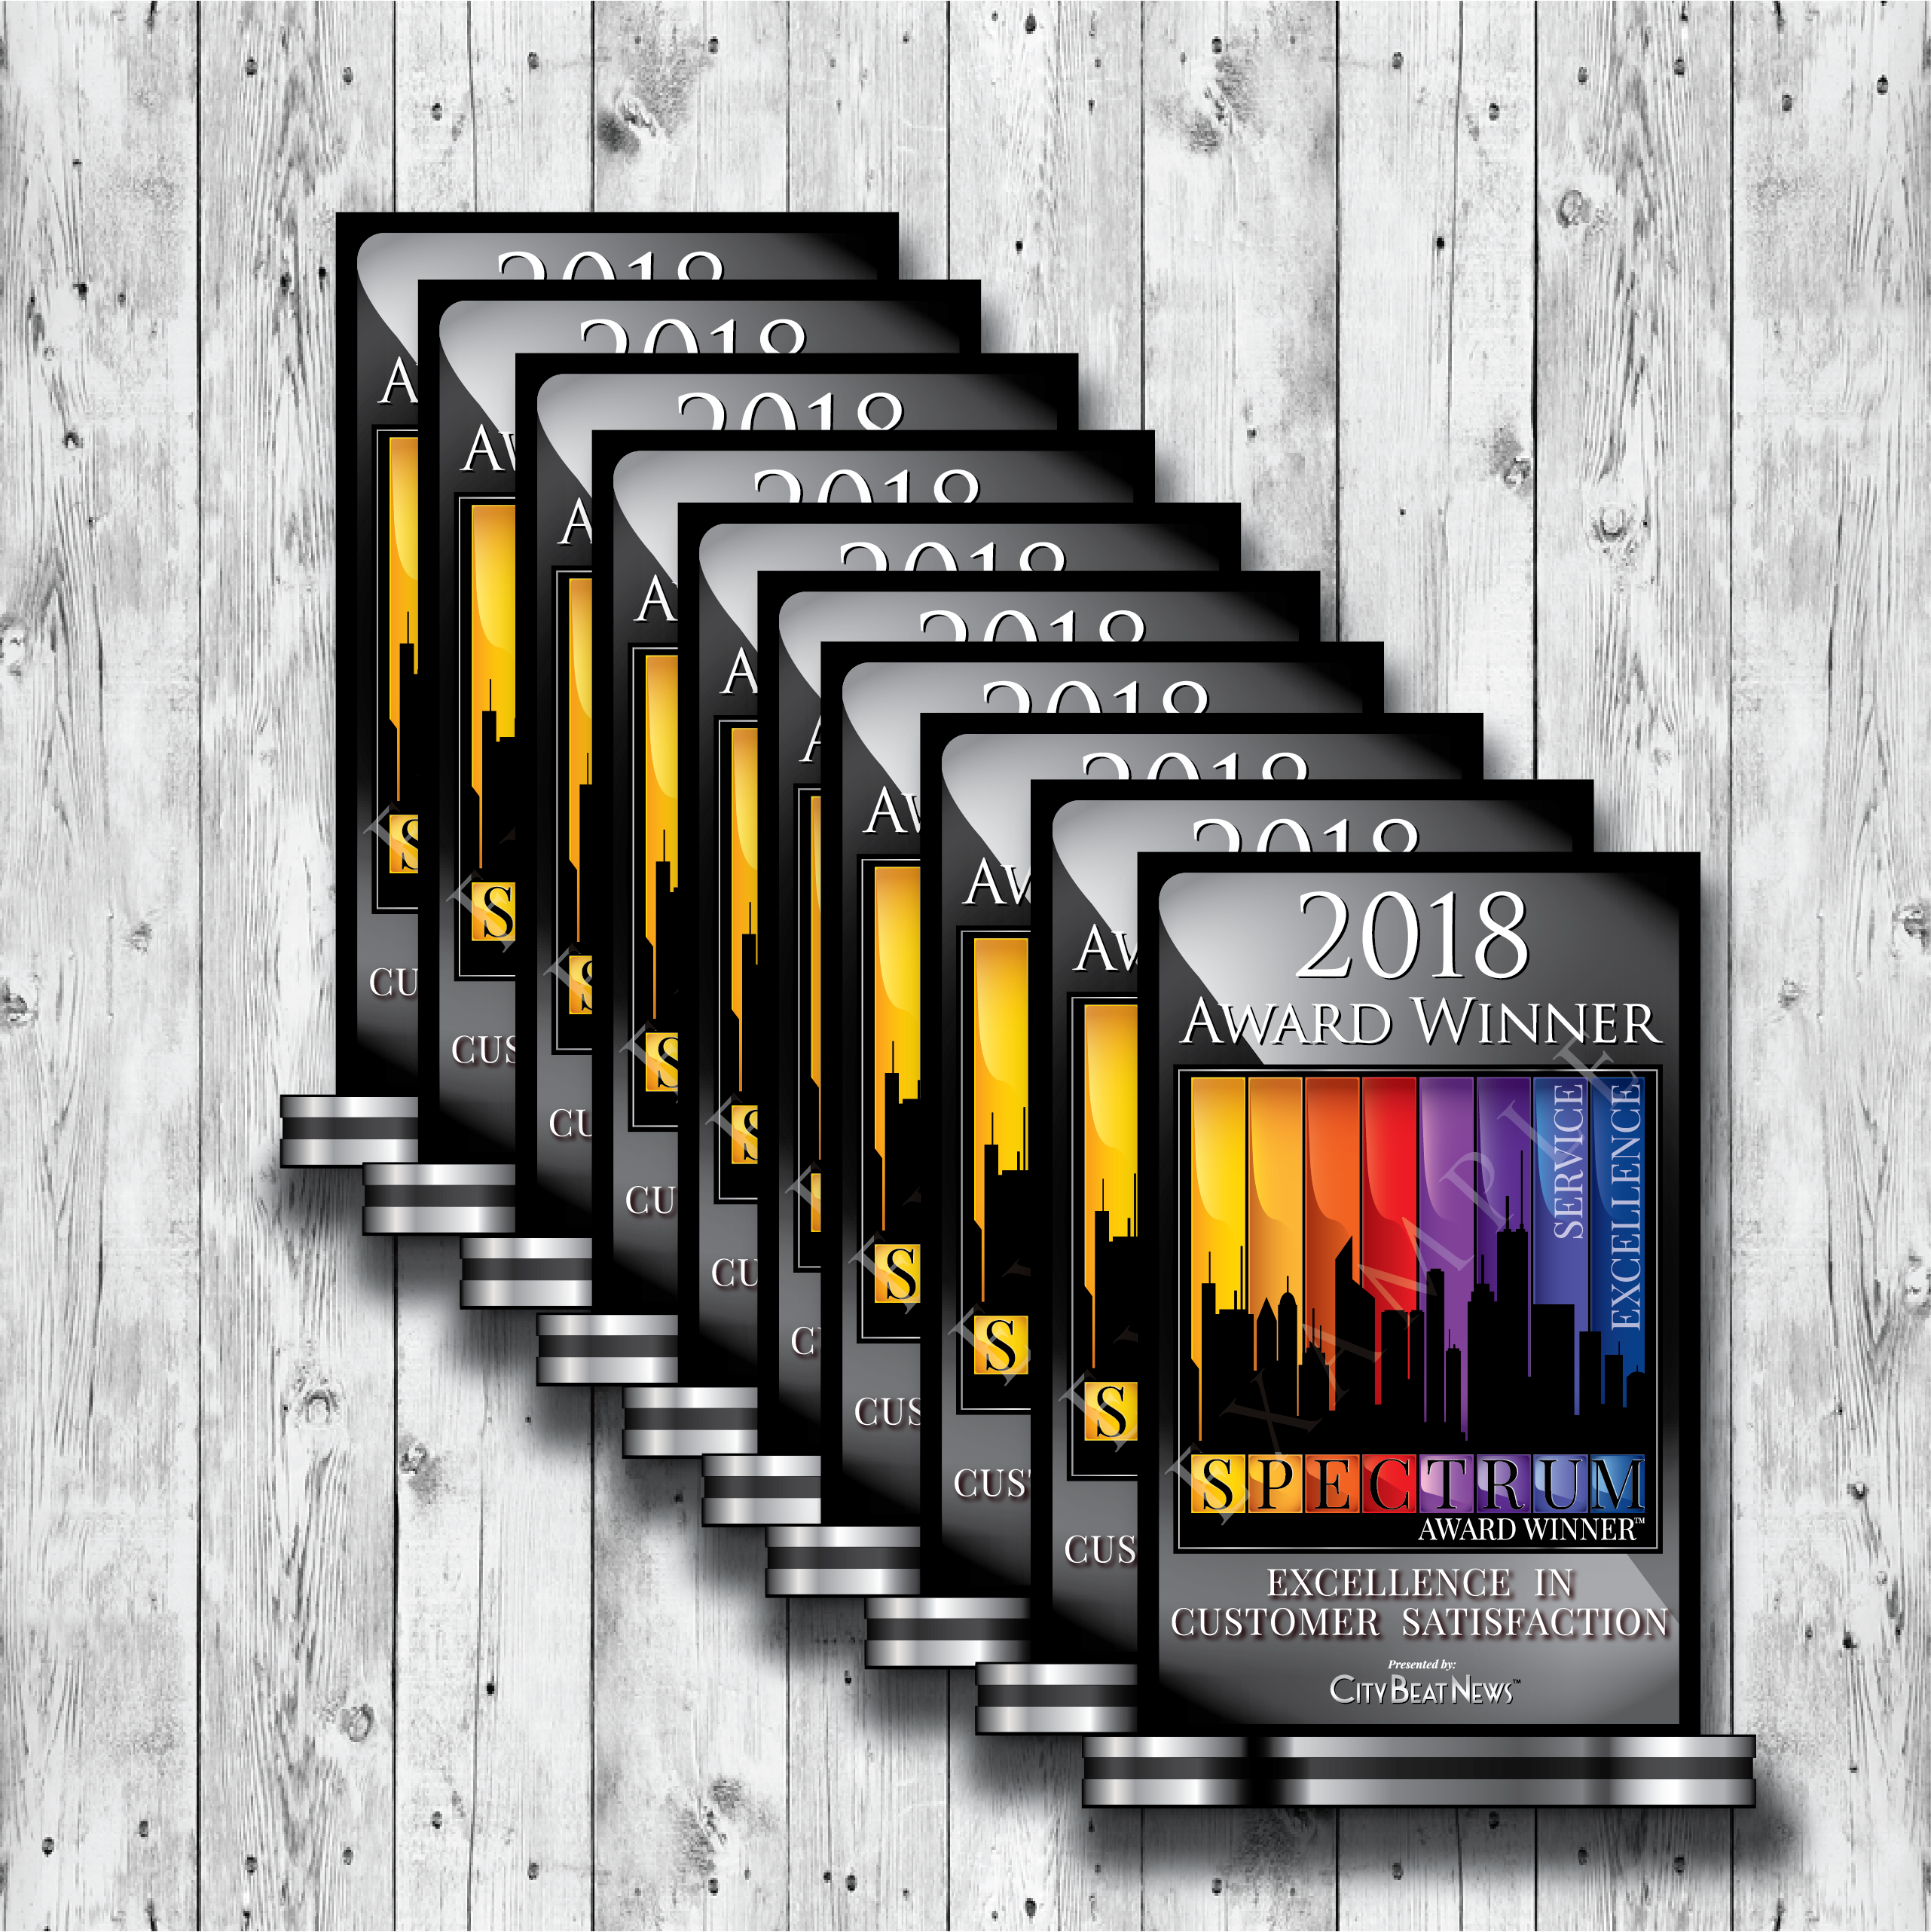 2018 City Beat News Spectrum Award Emblem Set of 10